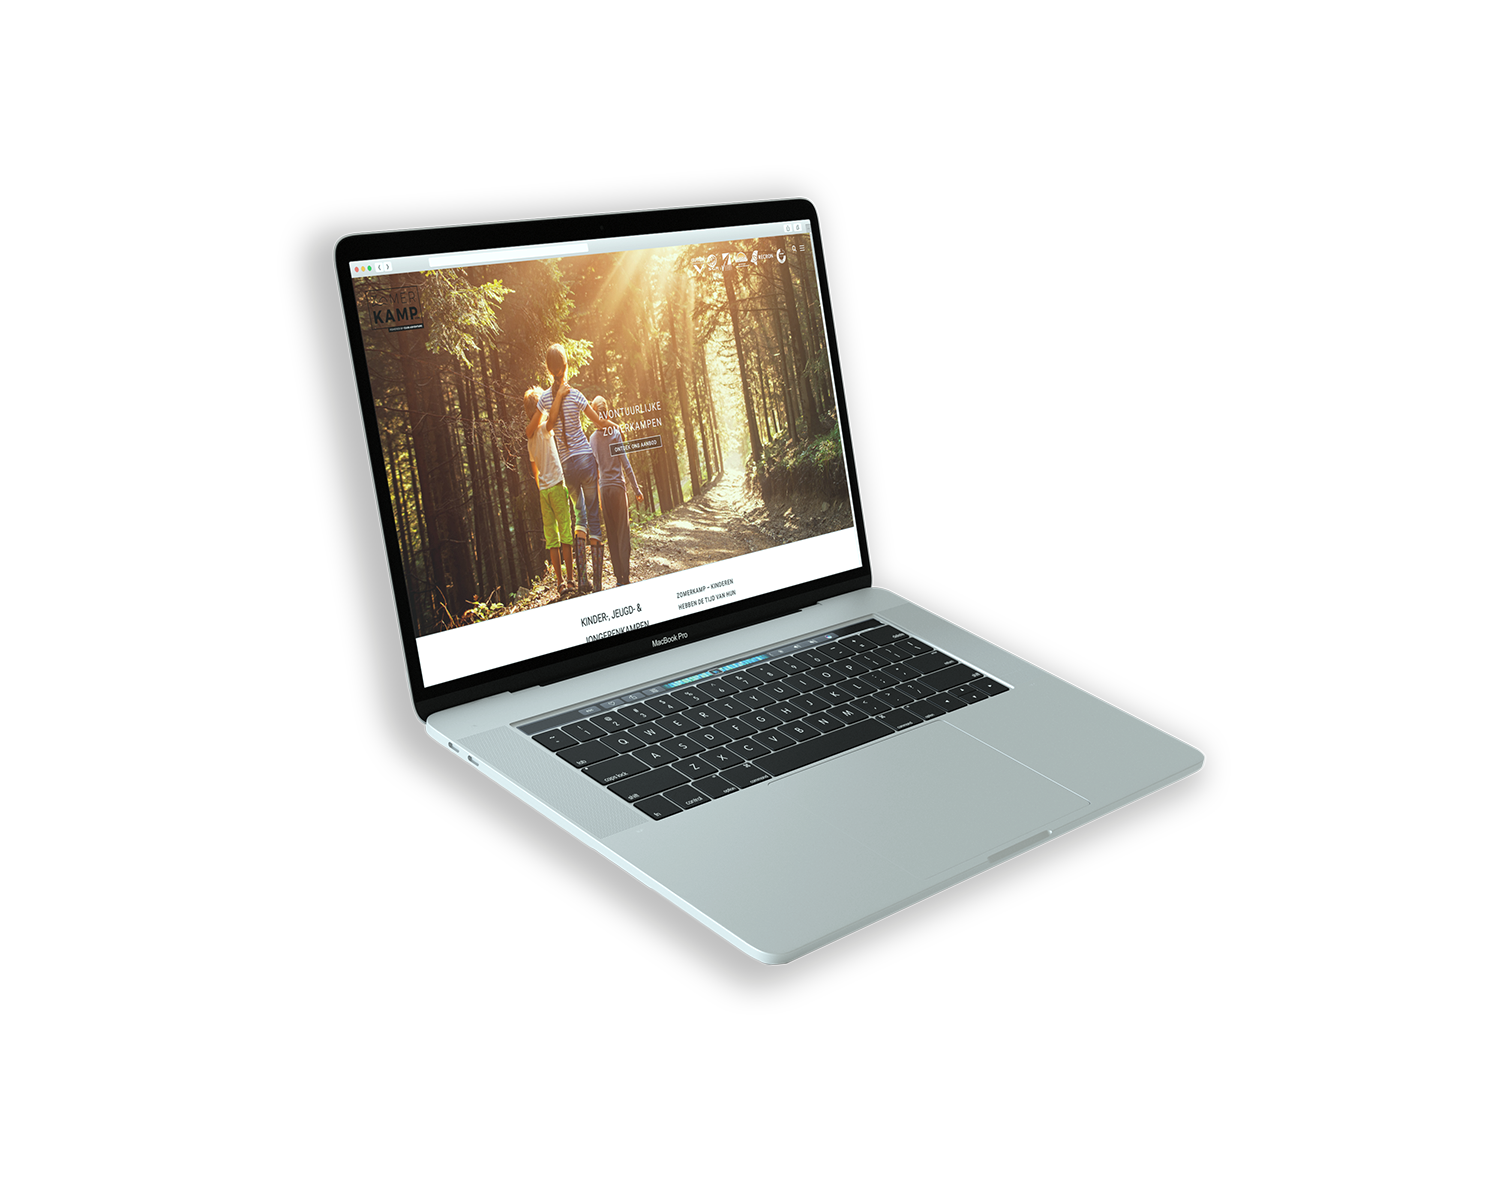 Macbook met website